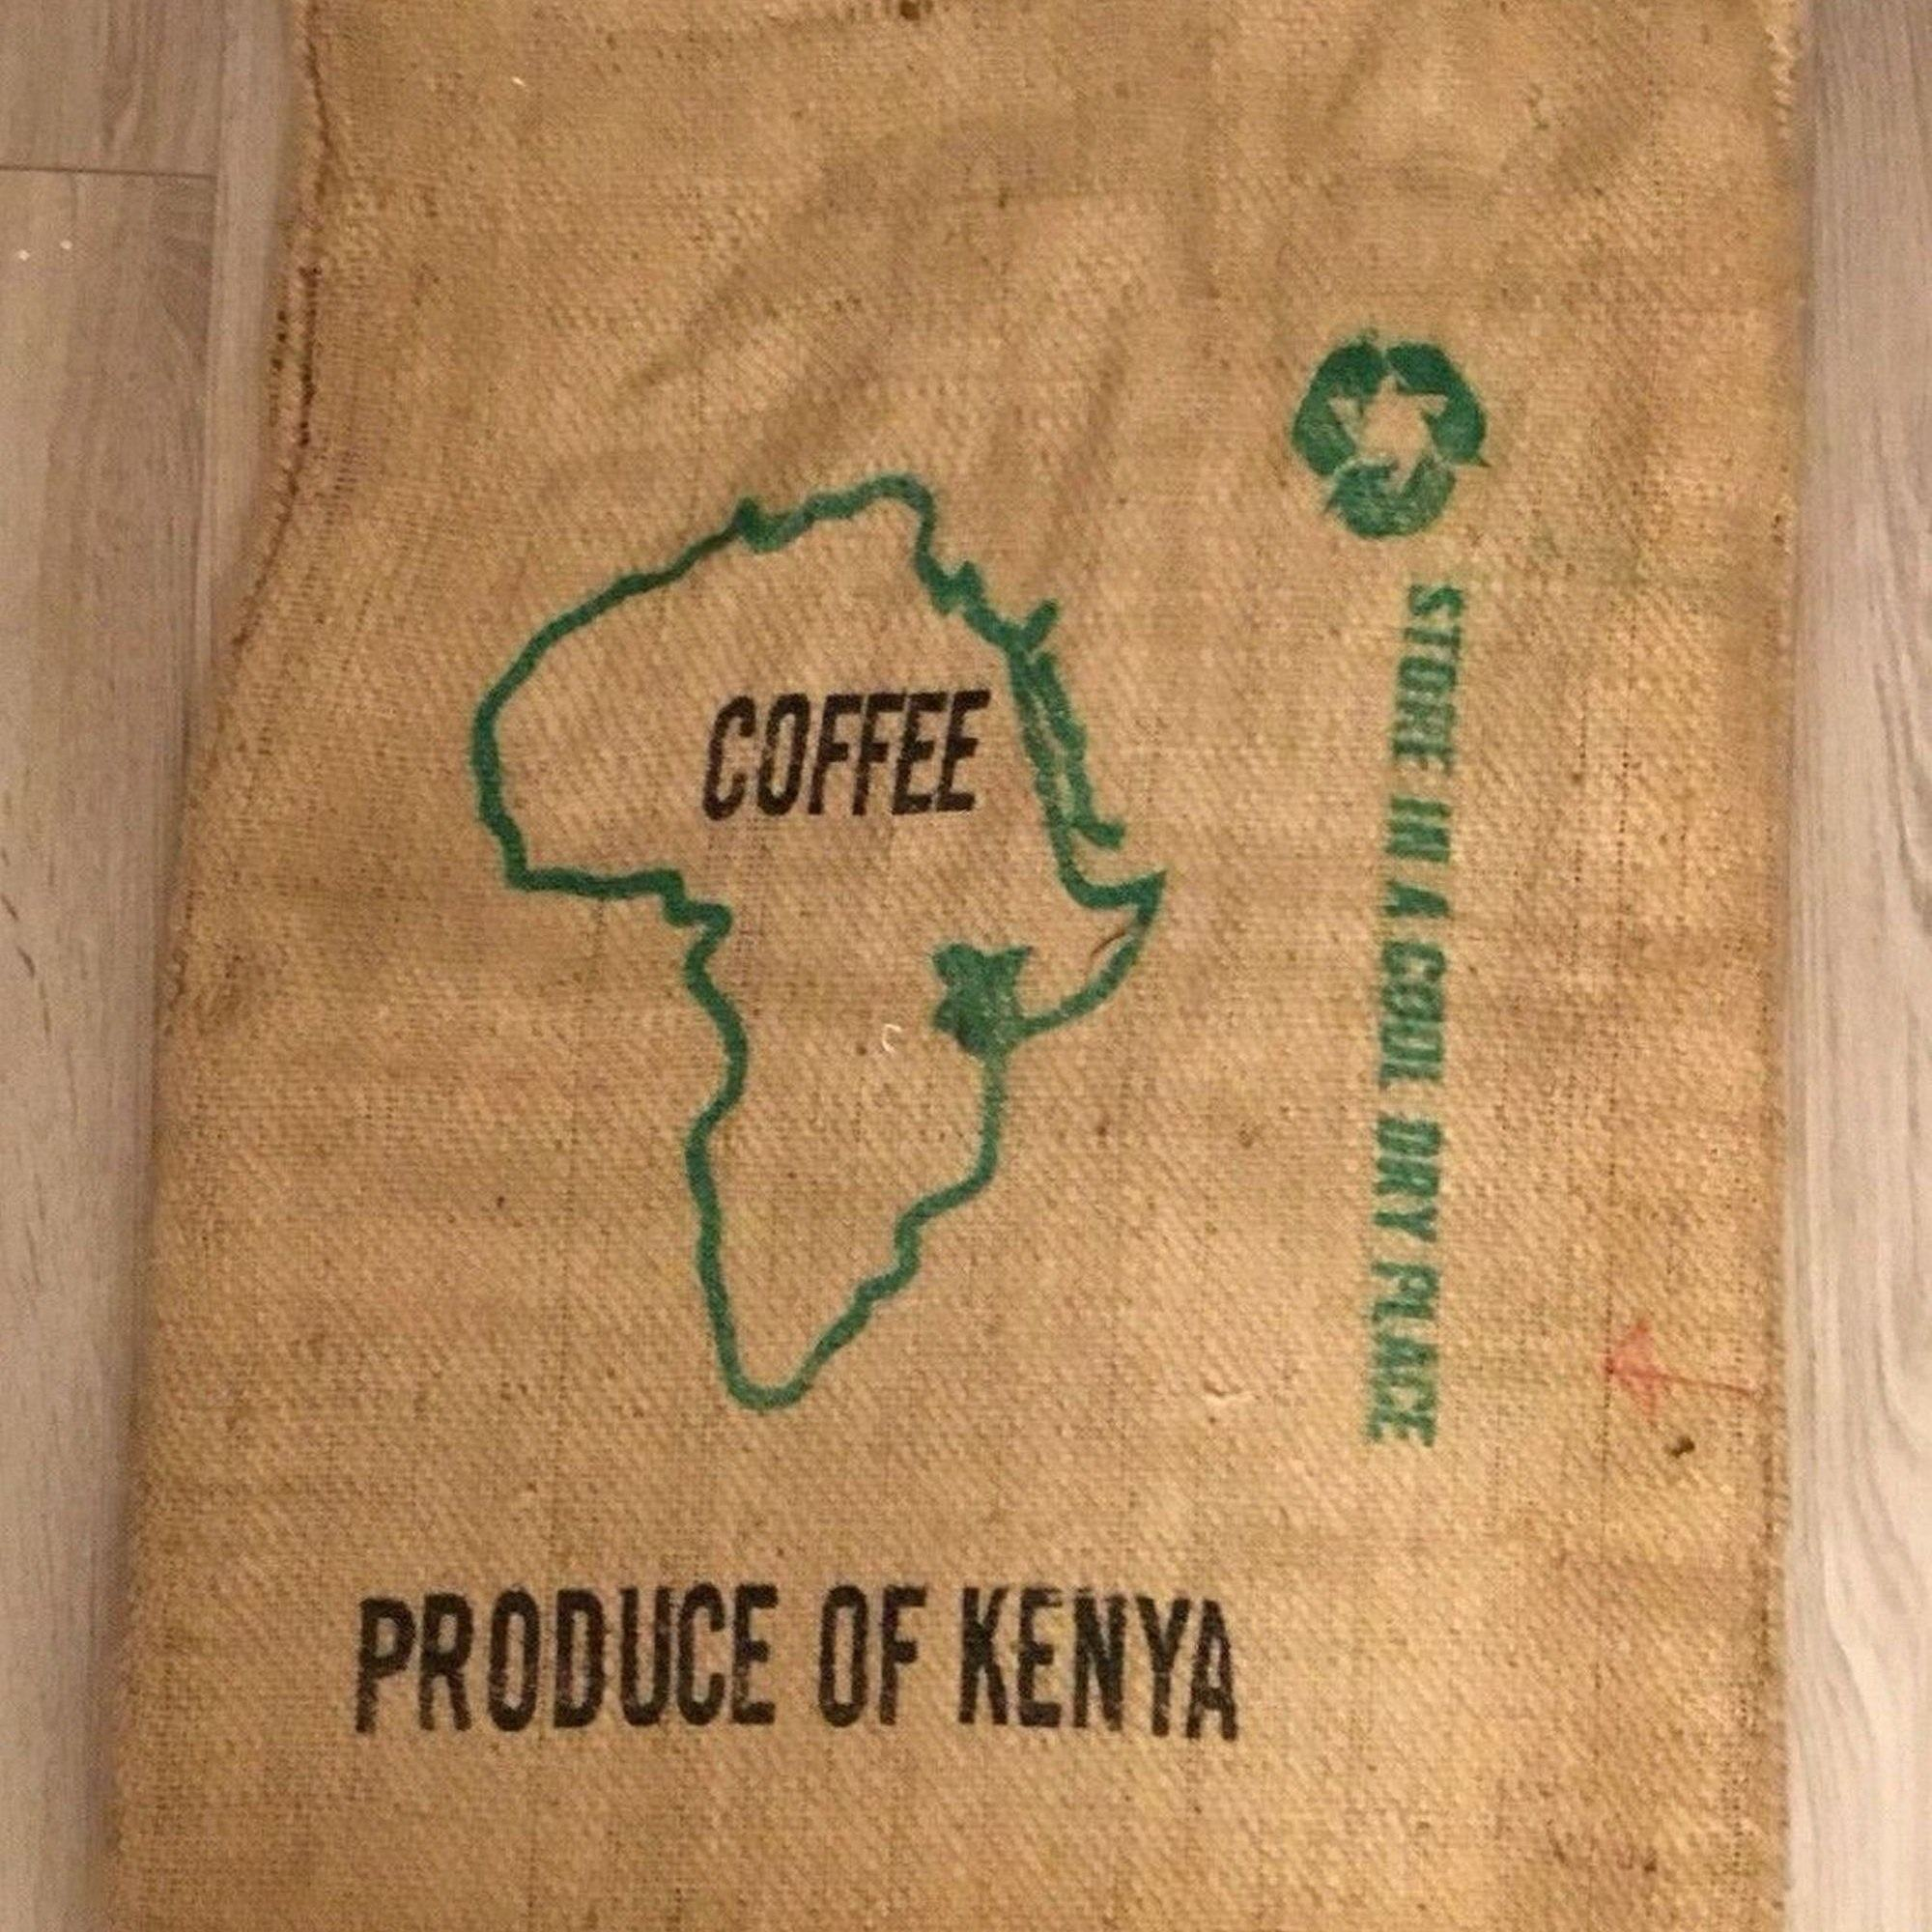 50-60 kgs Jute Sacks, Specially Designed for Kenya Coffee Board